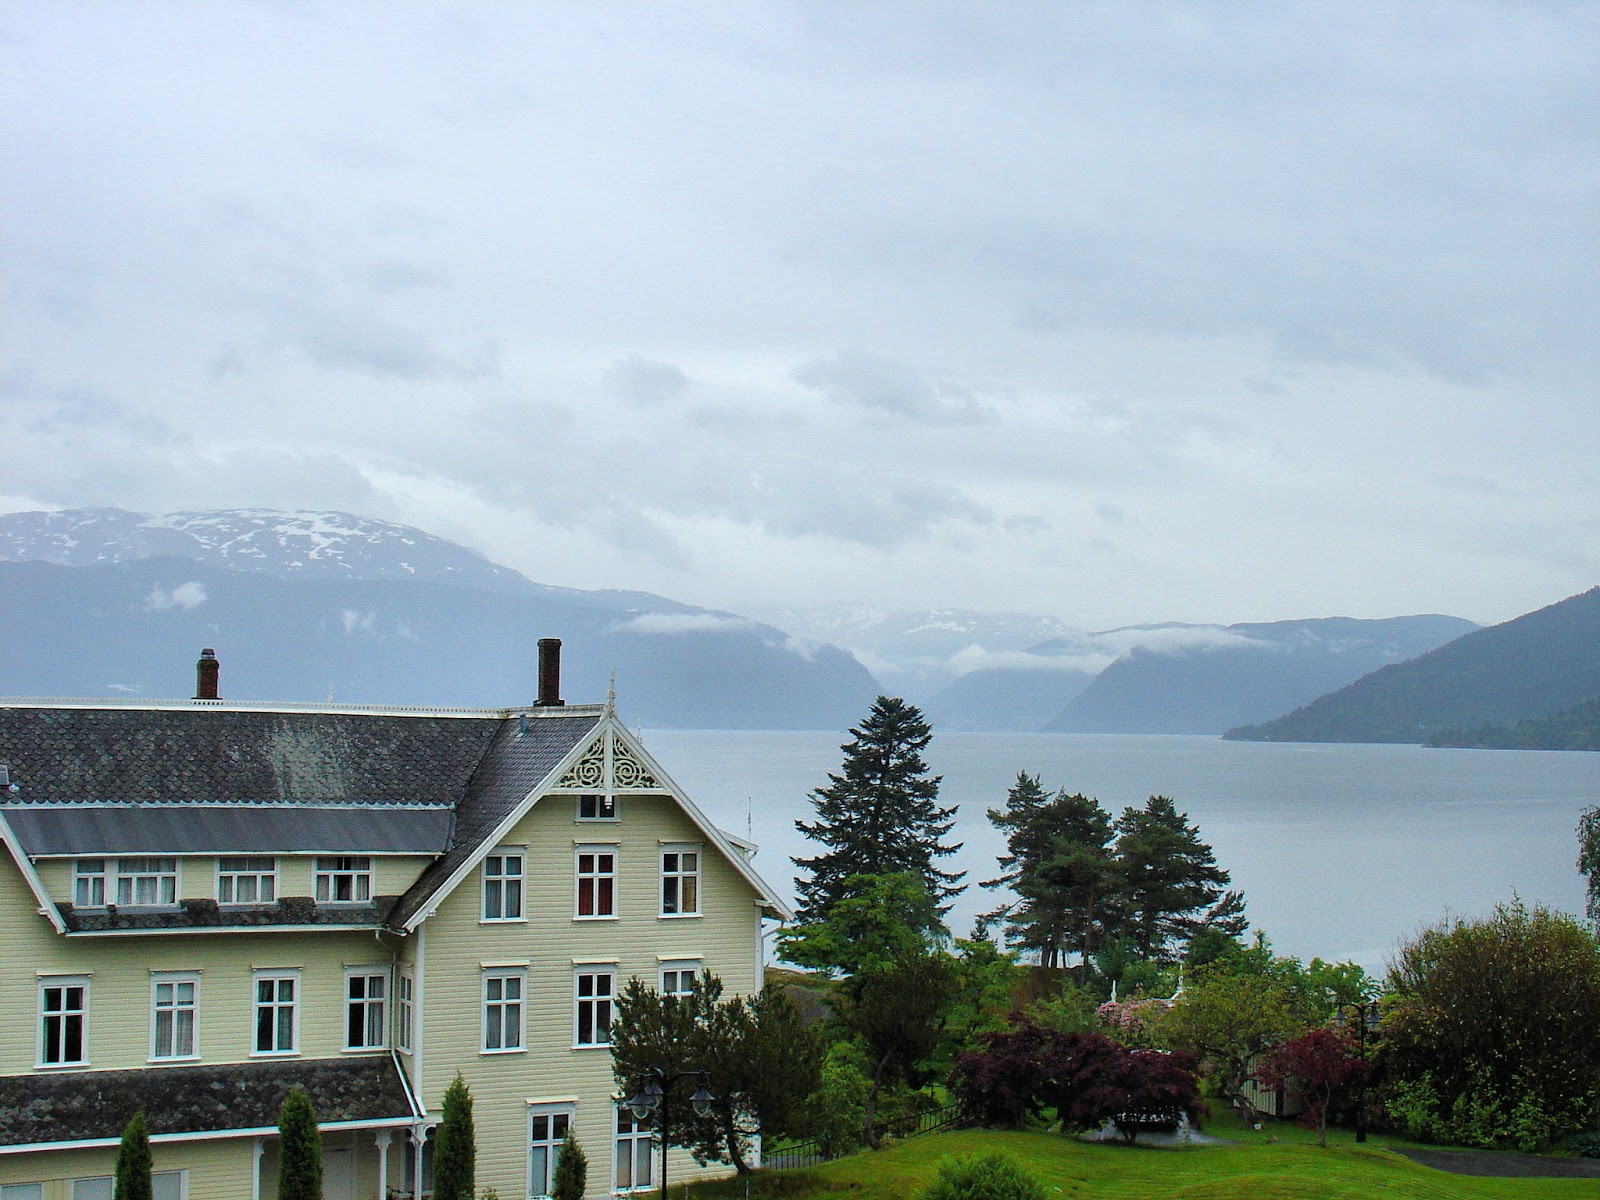 The Sognefjord provides a stunning backdrop for the Kviknes Hotel as seen from my room.